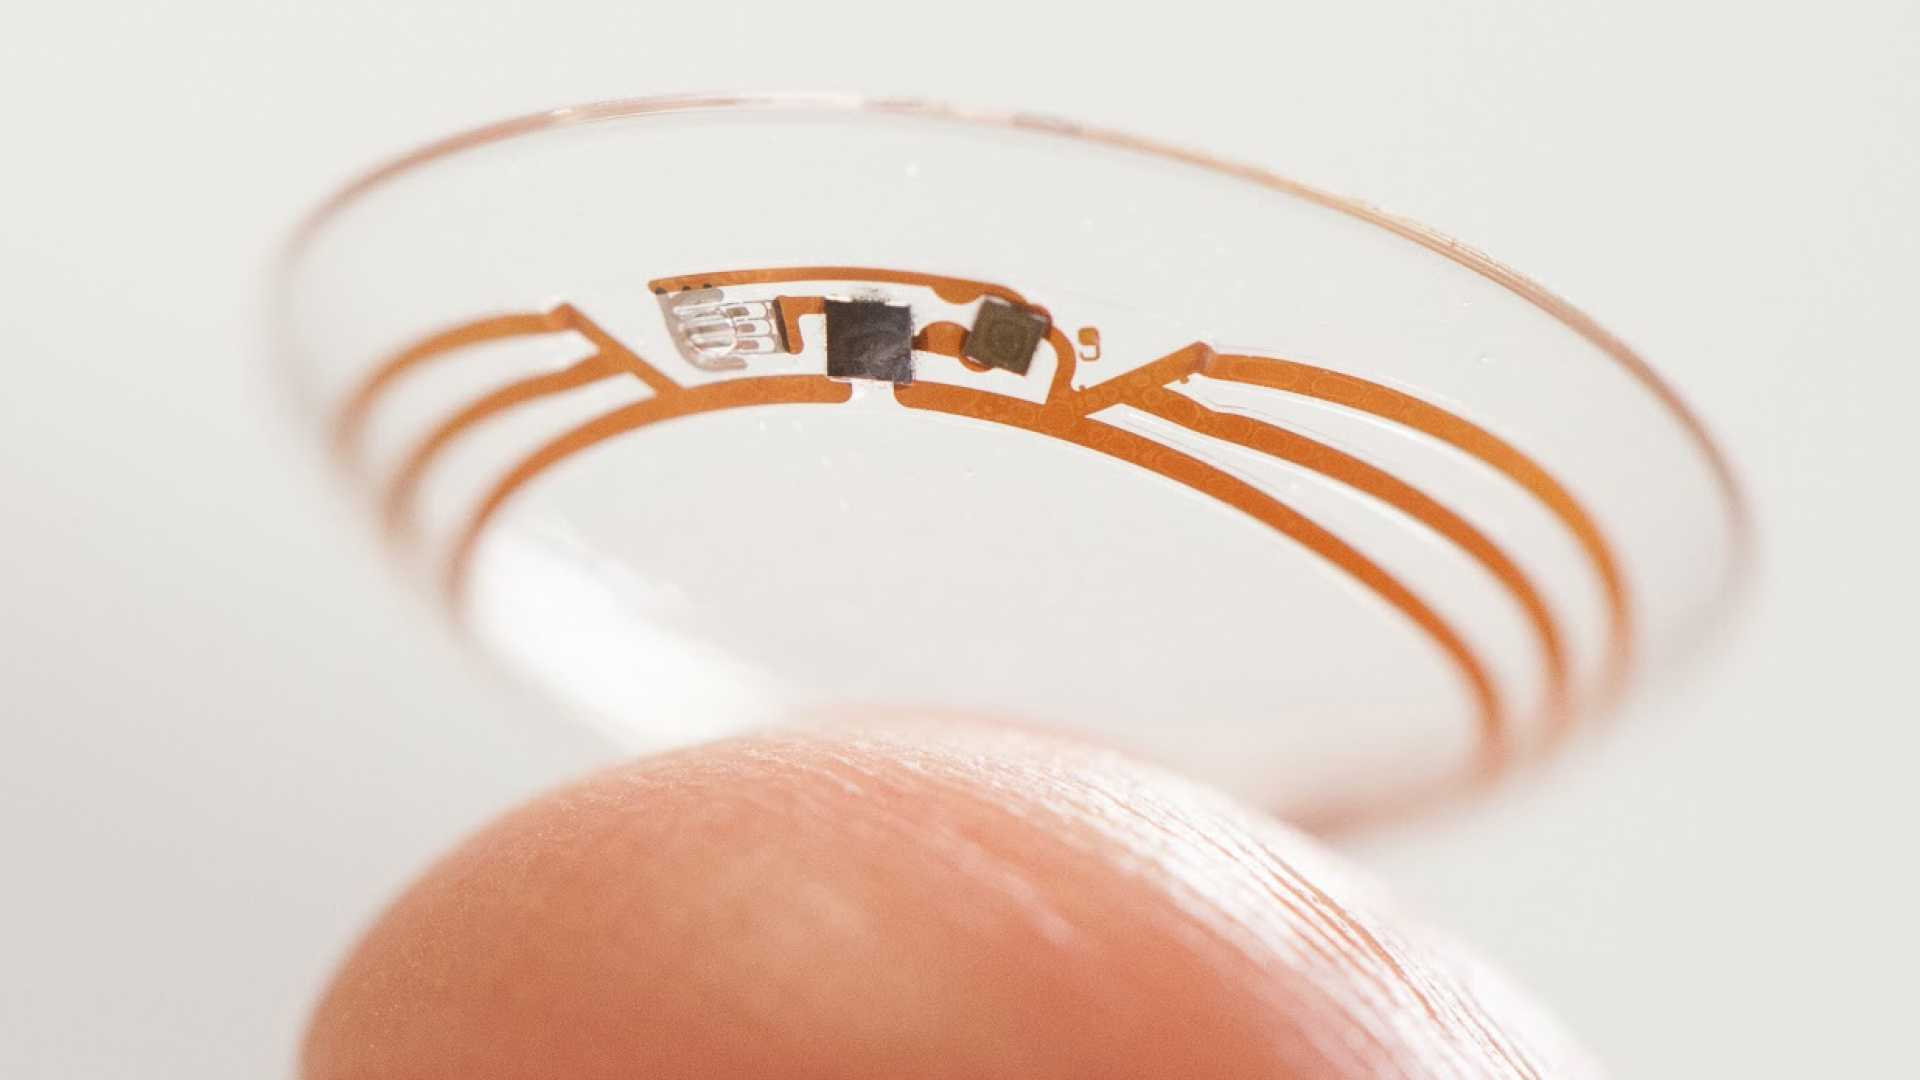 With Google's 'Smart' Contact Lenses, the Internet of Tiny Things Has Arrived